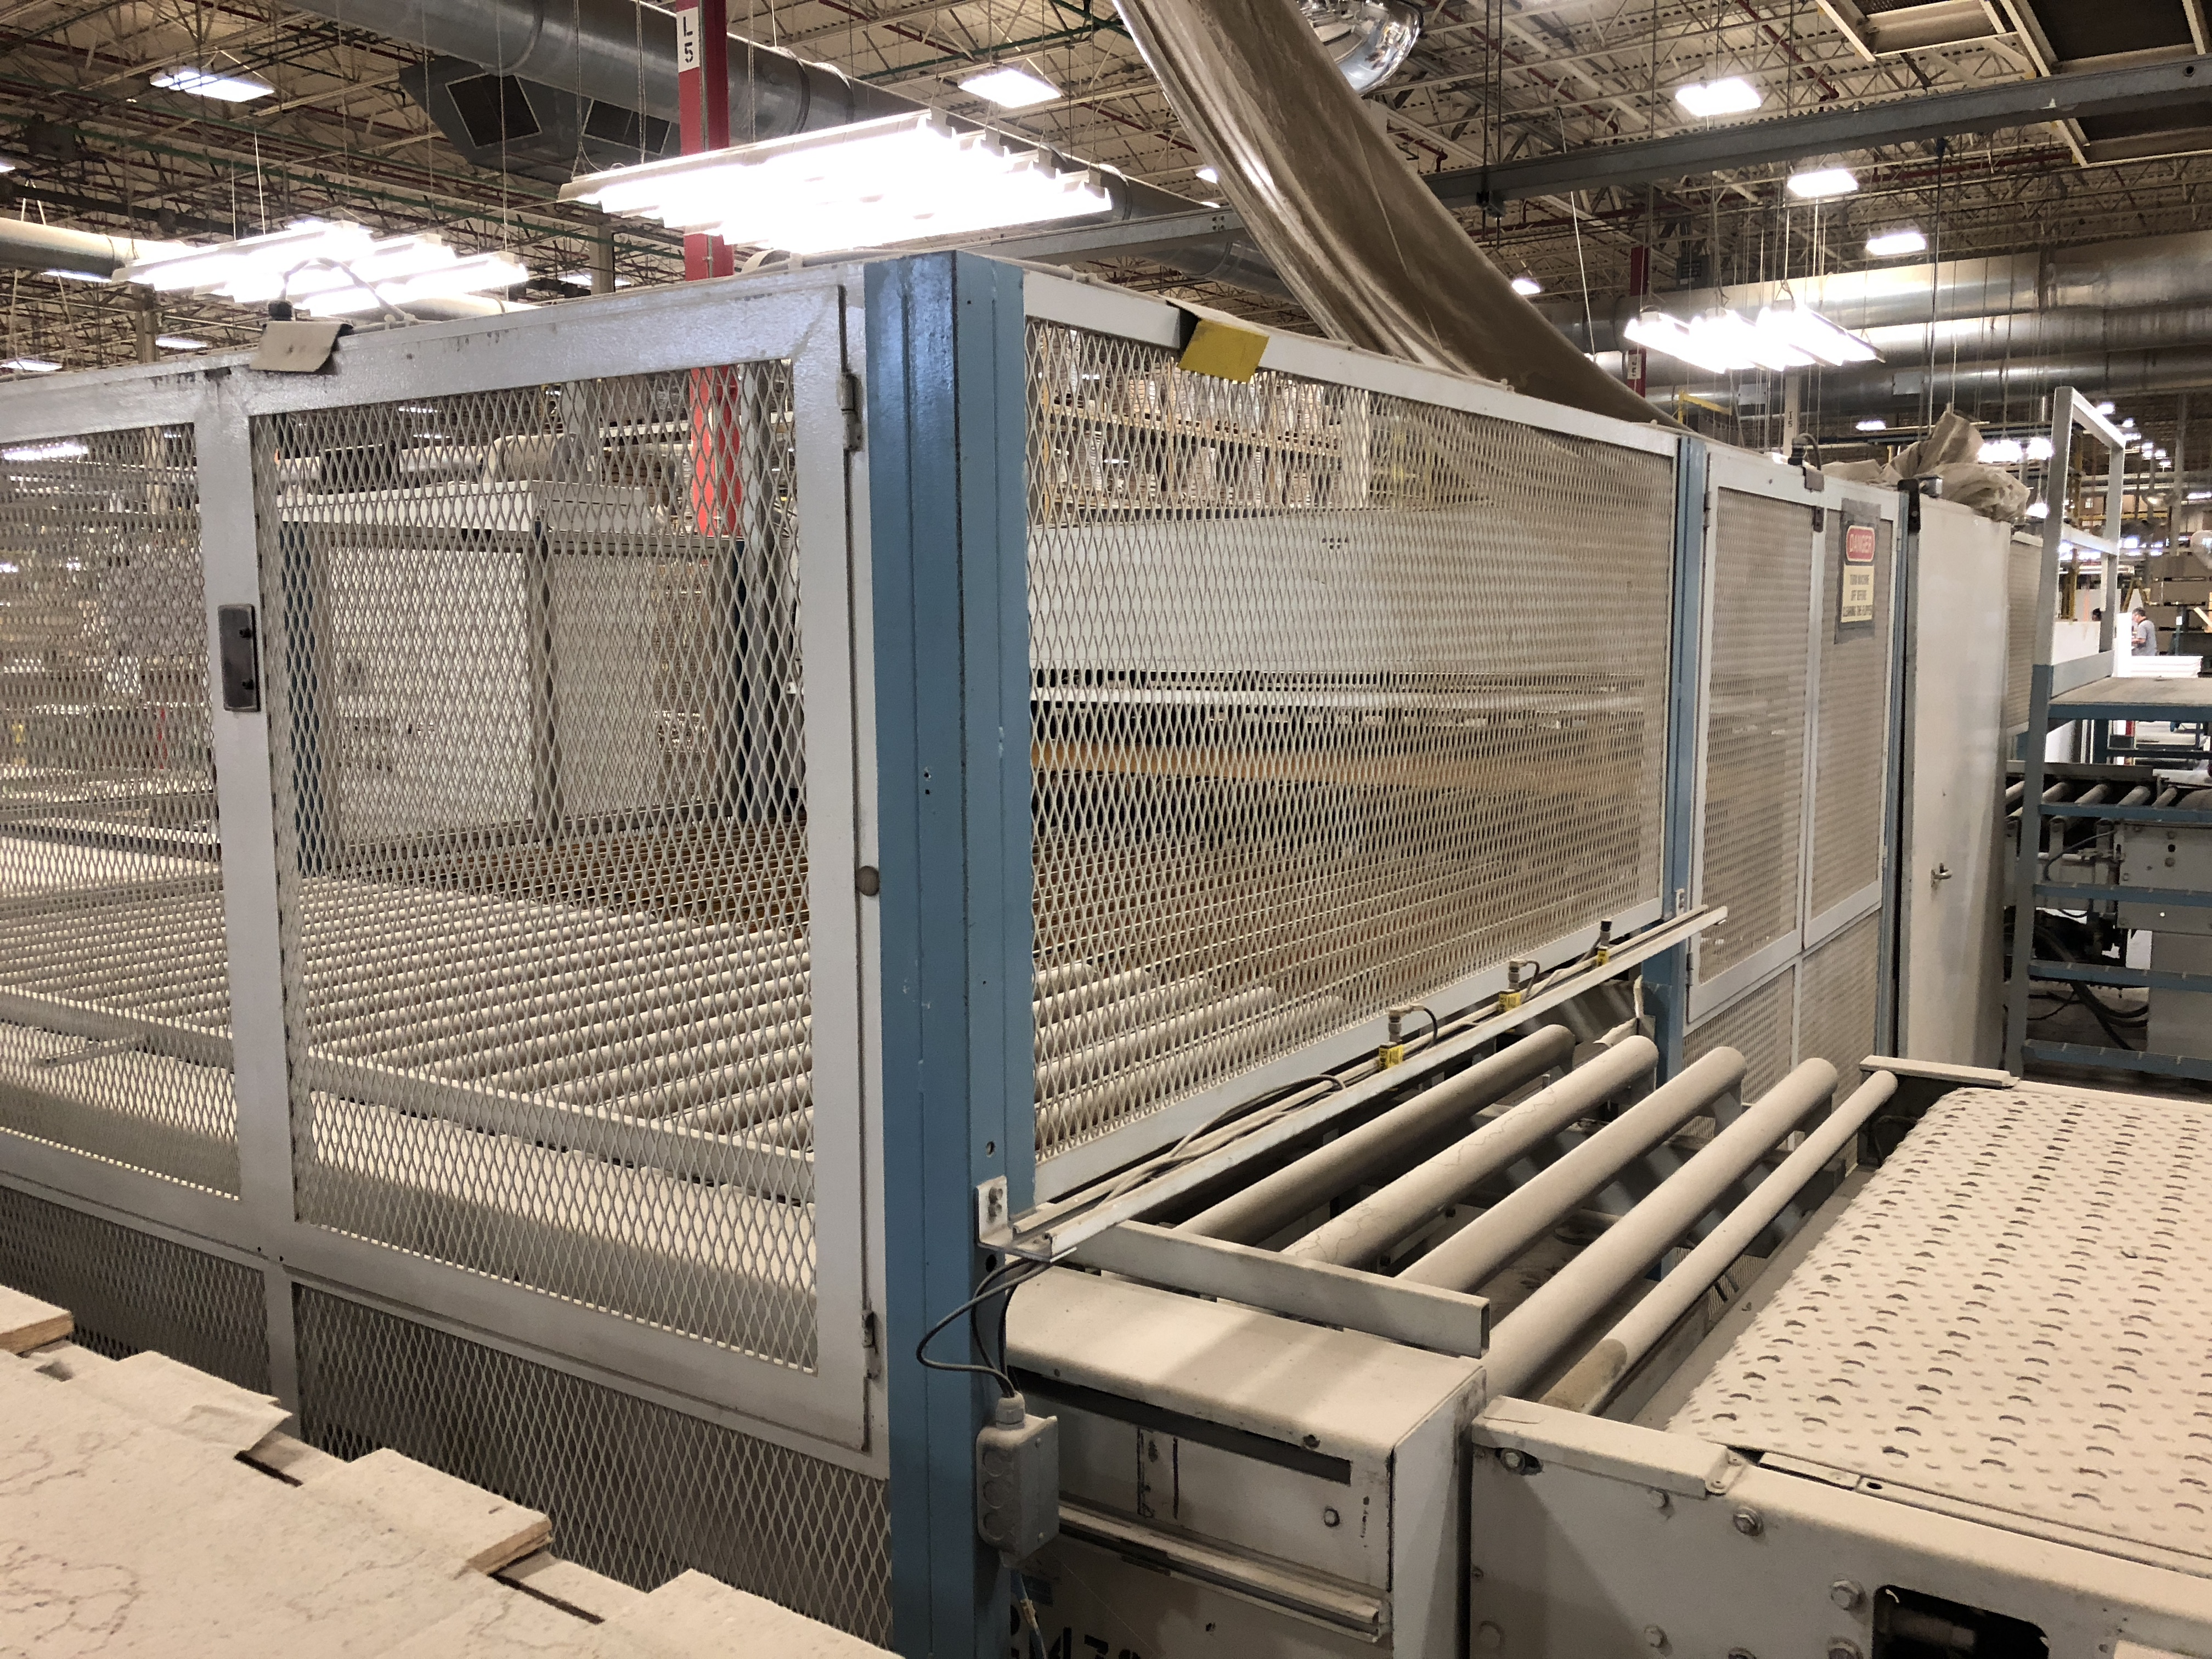 CEFLA PANEL FLIPPER (WITH INFEED AND OUTFEED BELT CONVEYORS) - Image 6 of 11